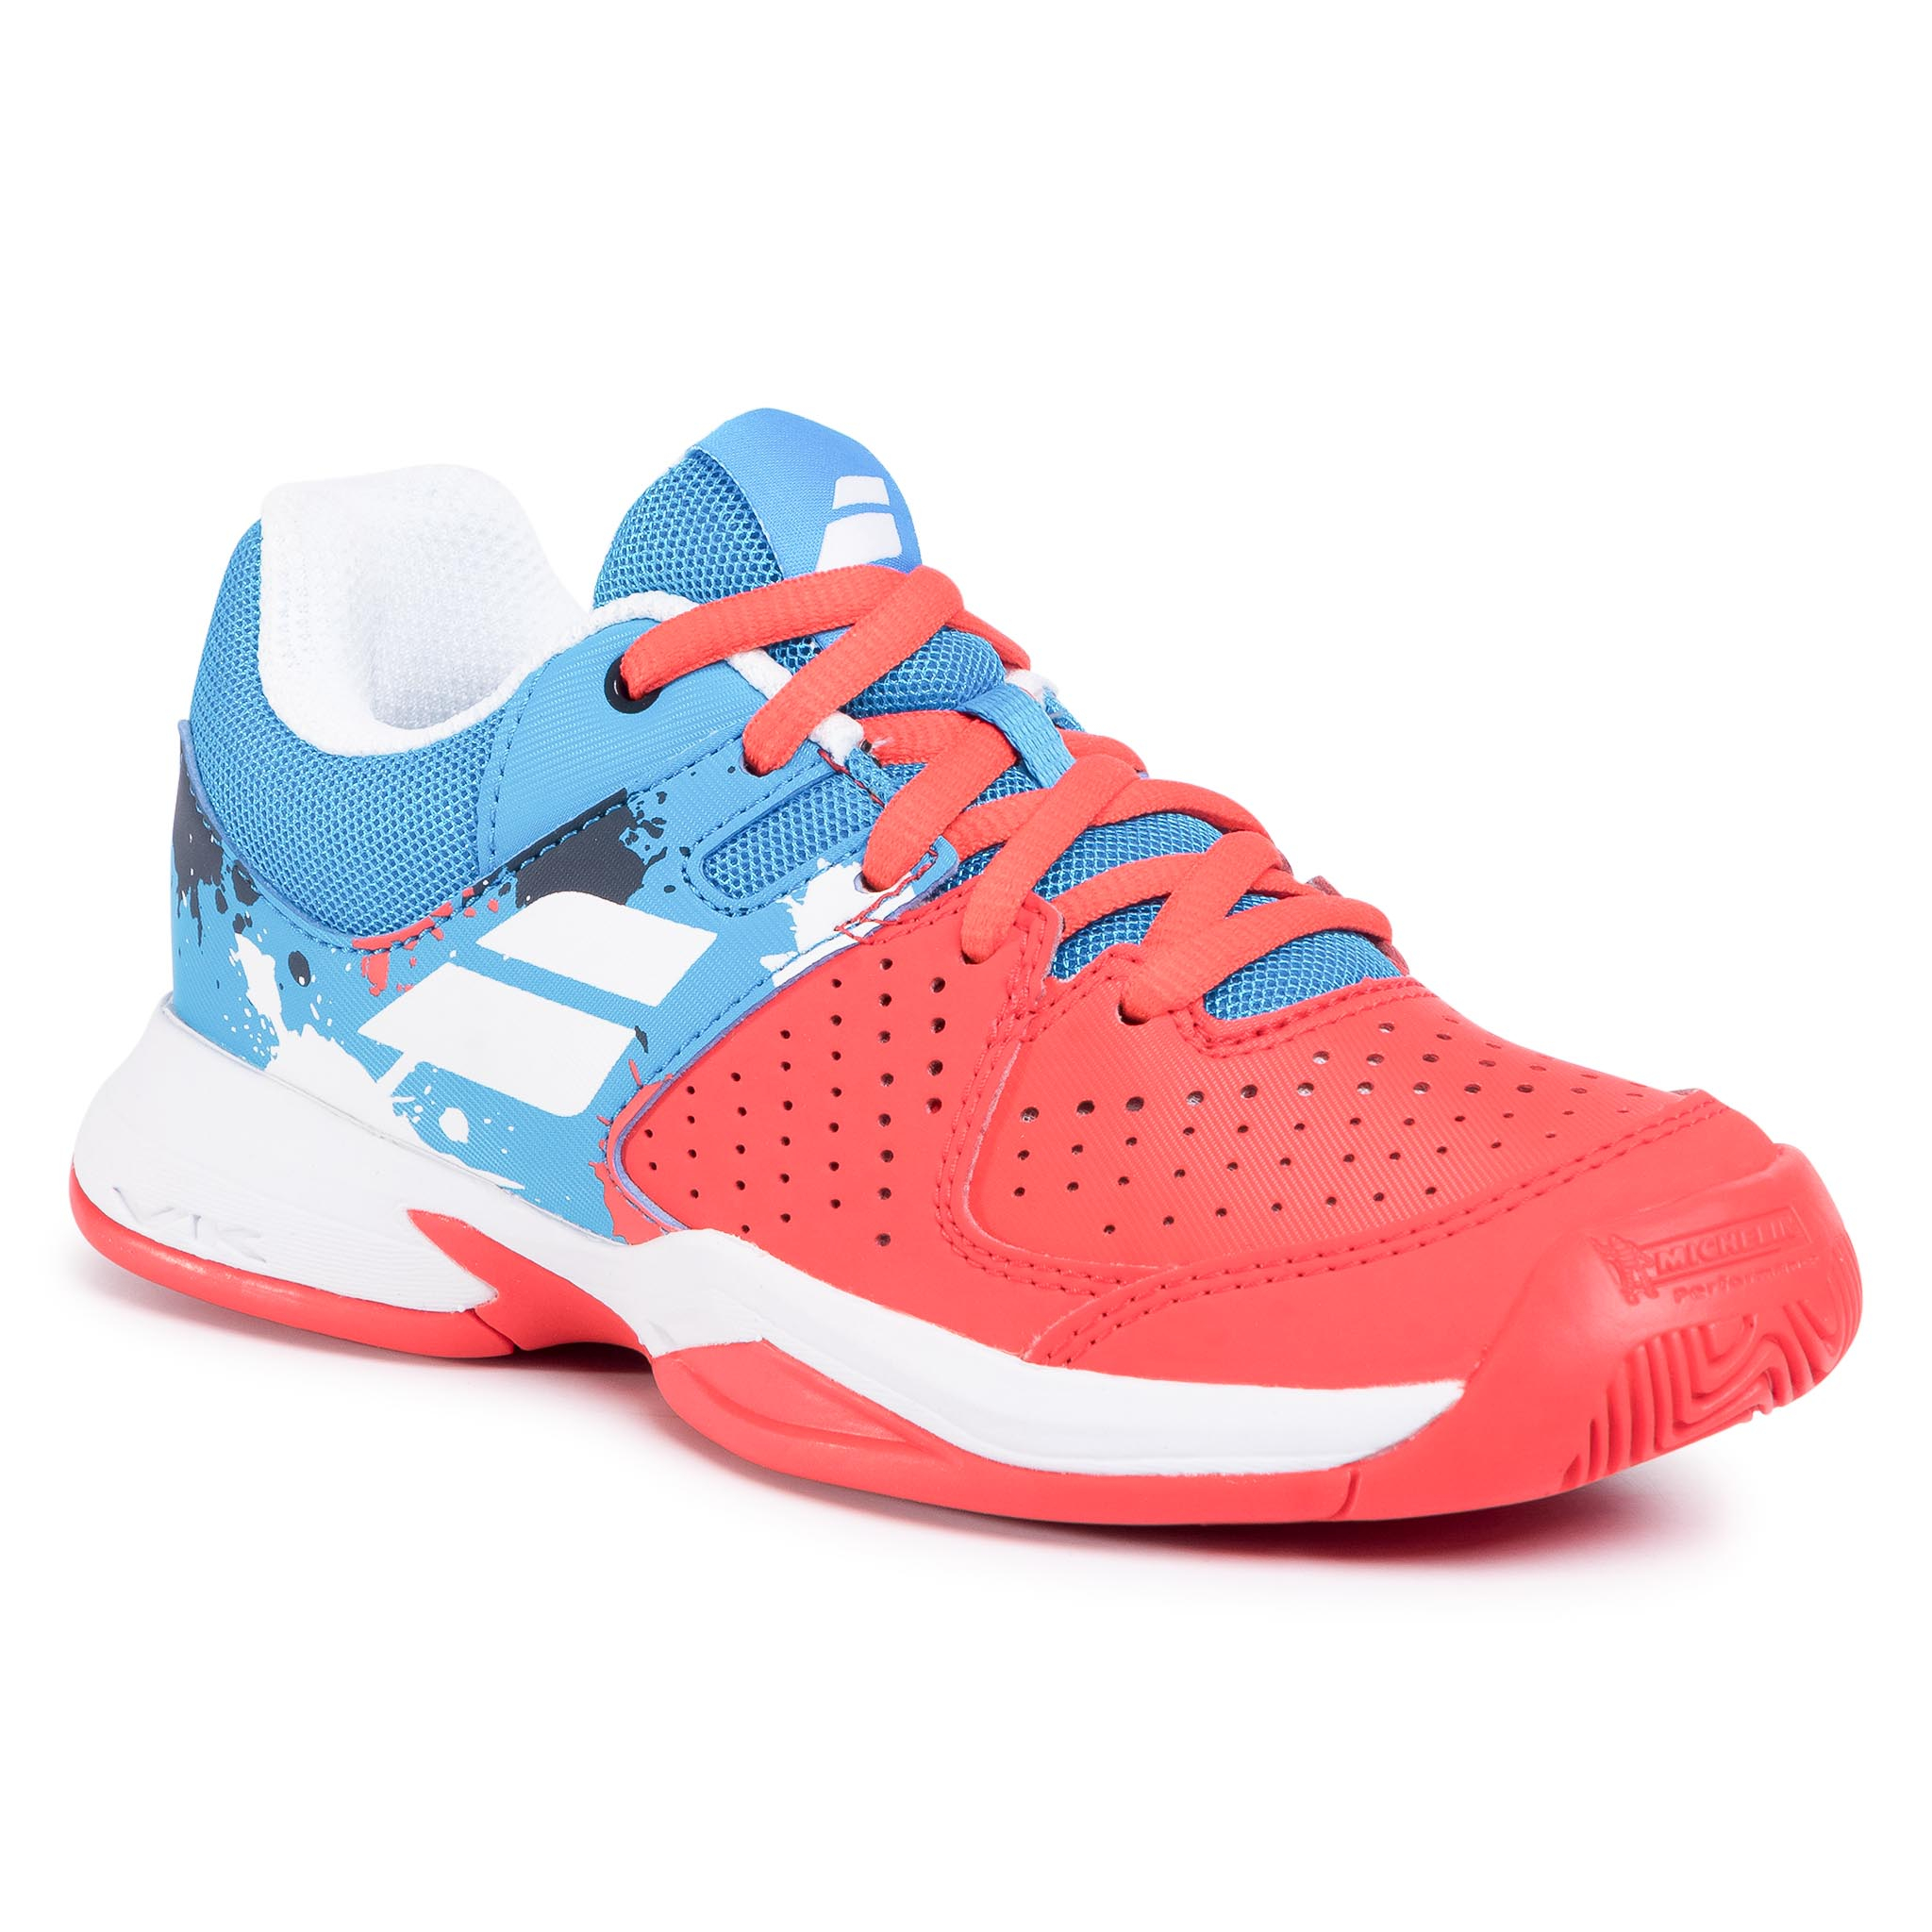 Batai BABOLAT - Pulsion All Court Jr 32S20482 Tomato Red/Blue Aster